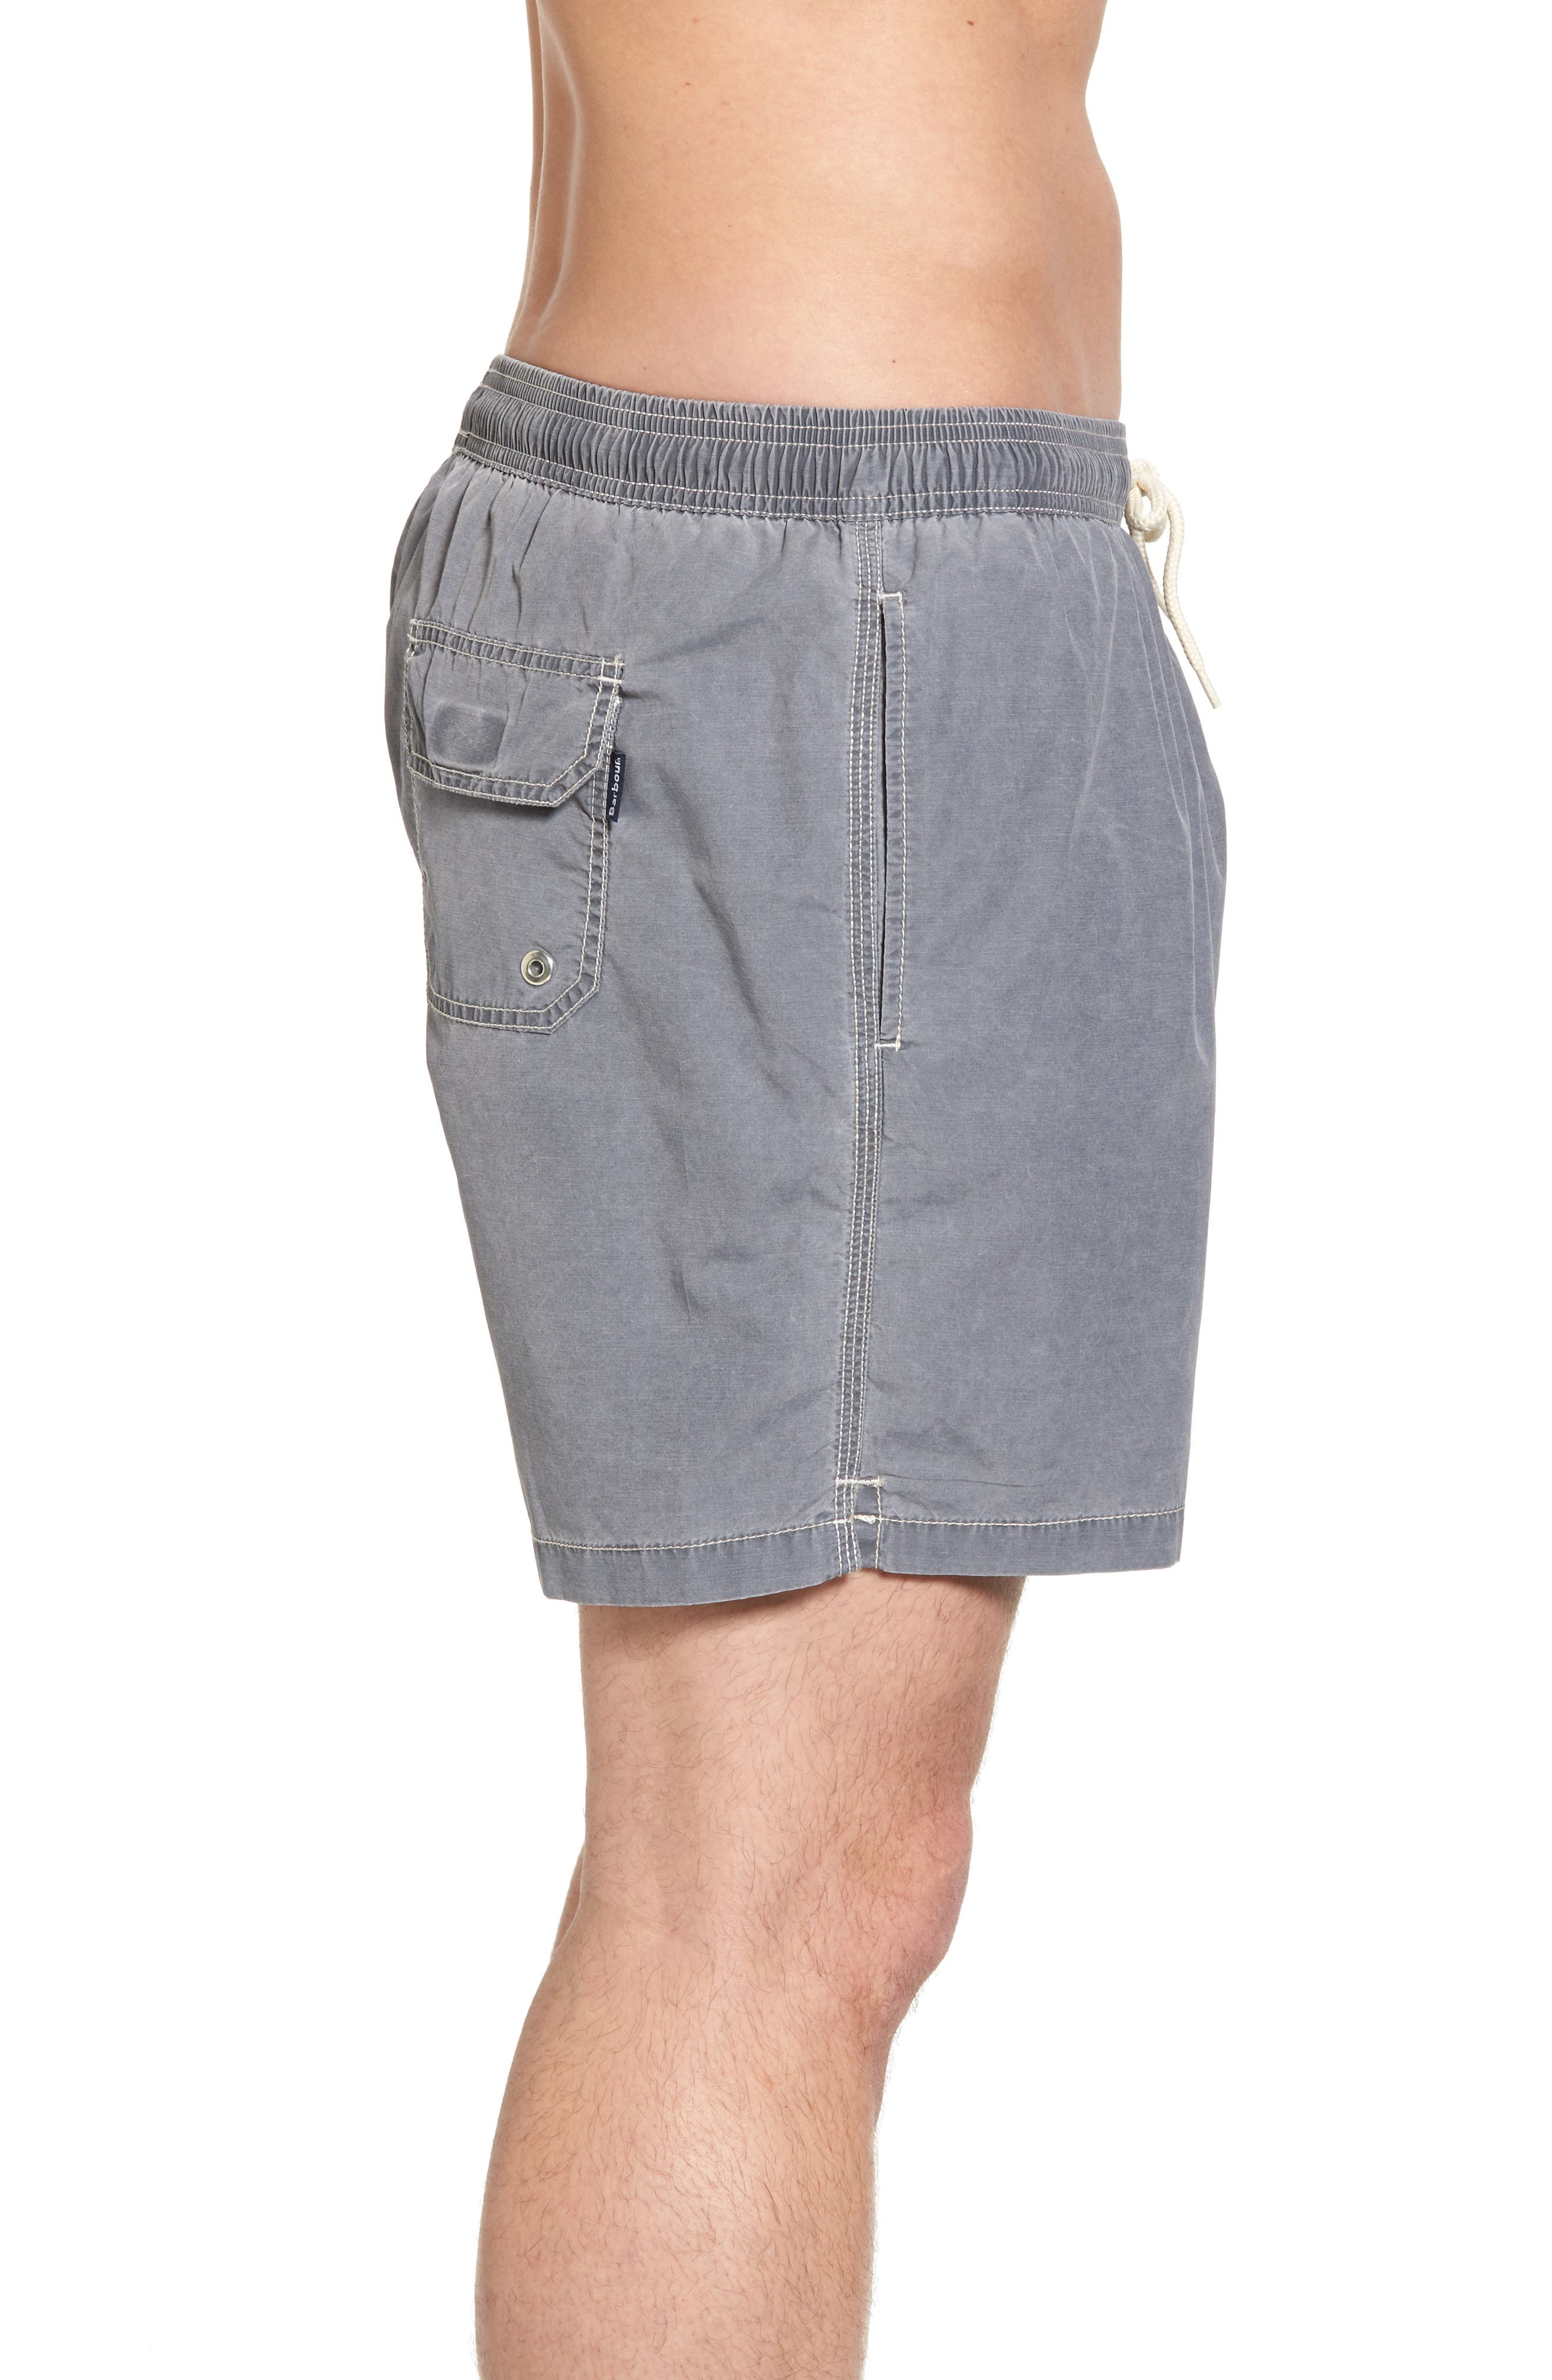 Victor Swim Trunks,                             Alternate thumbnail 3, color,                             021